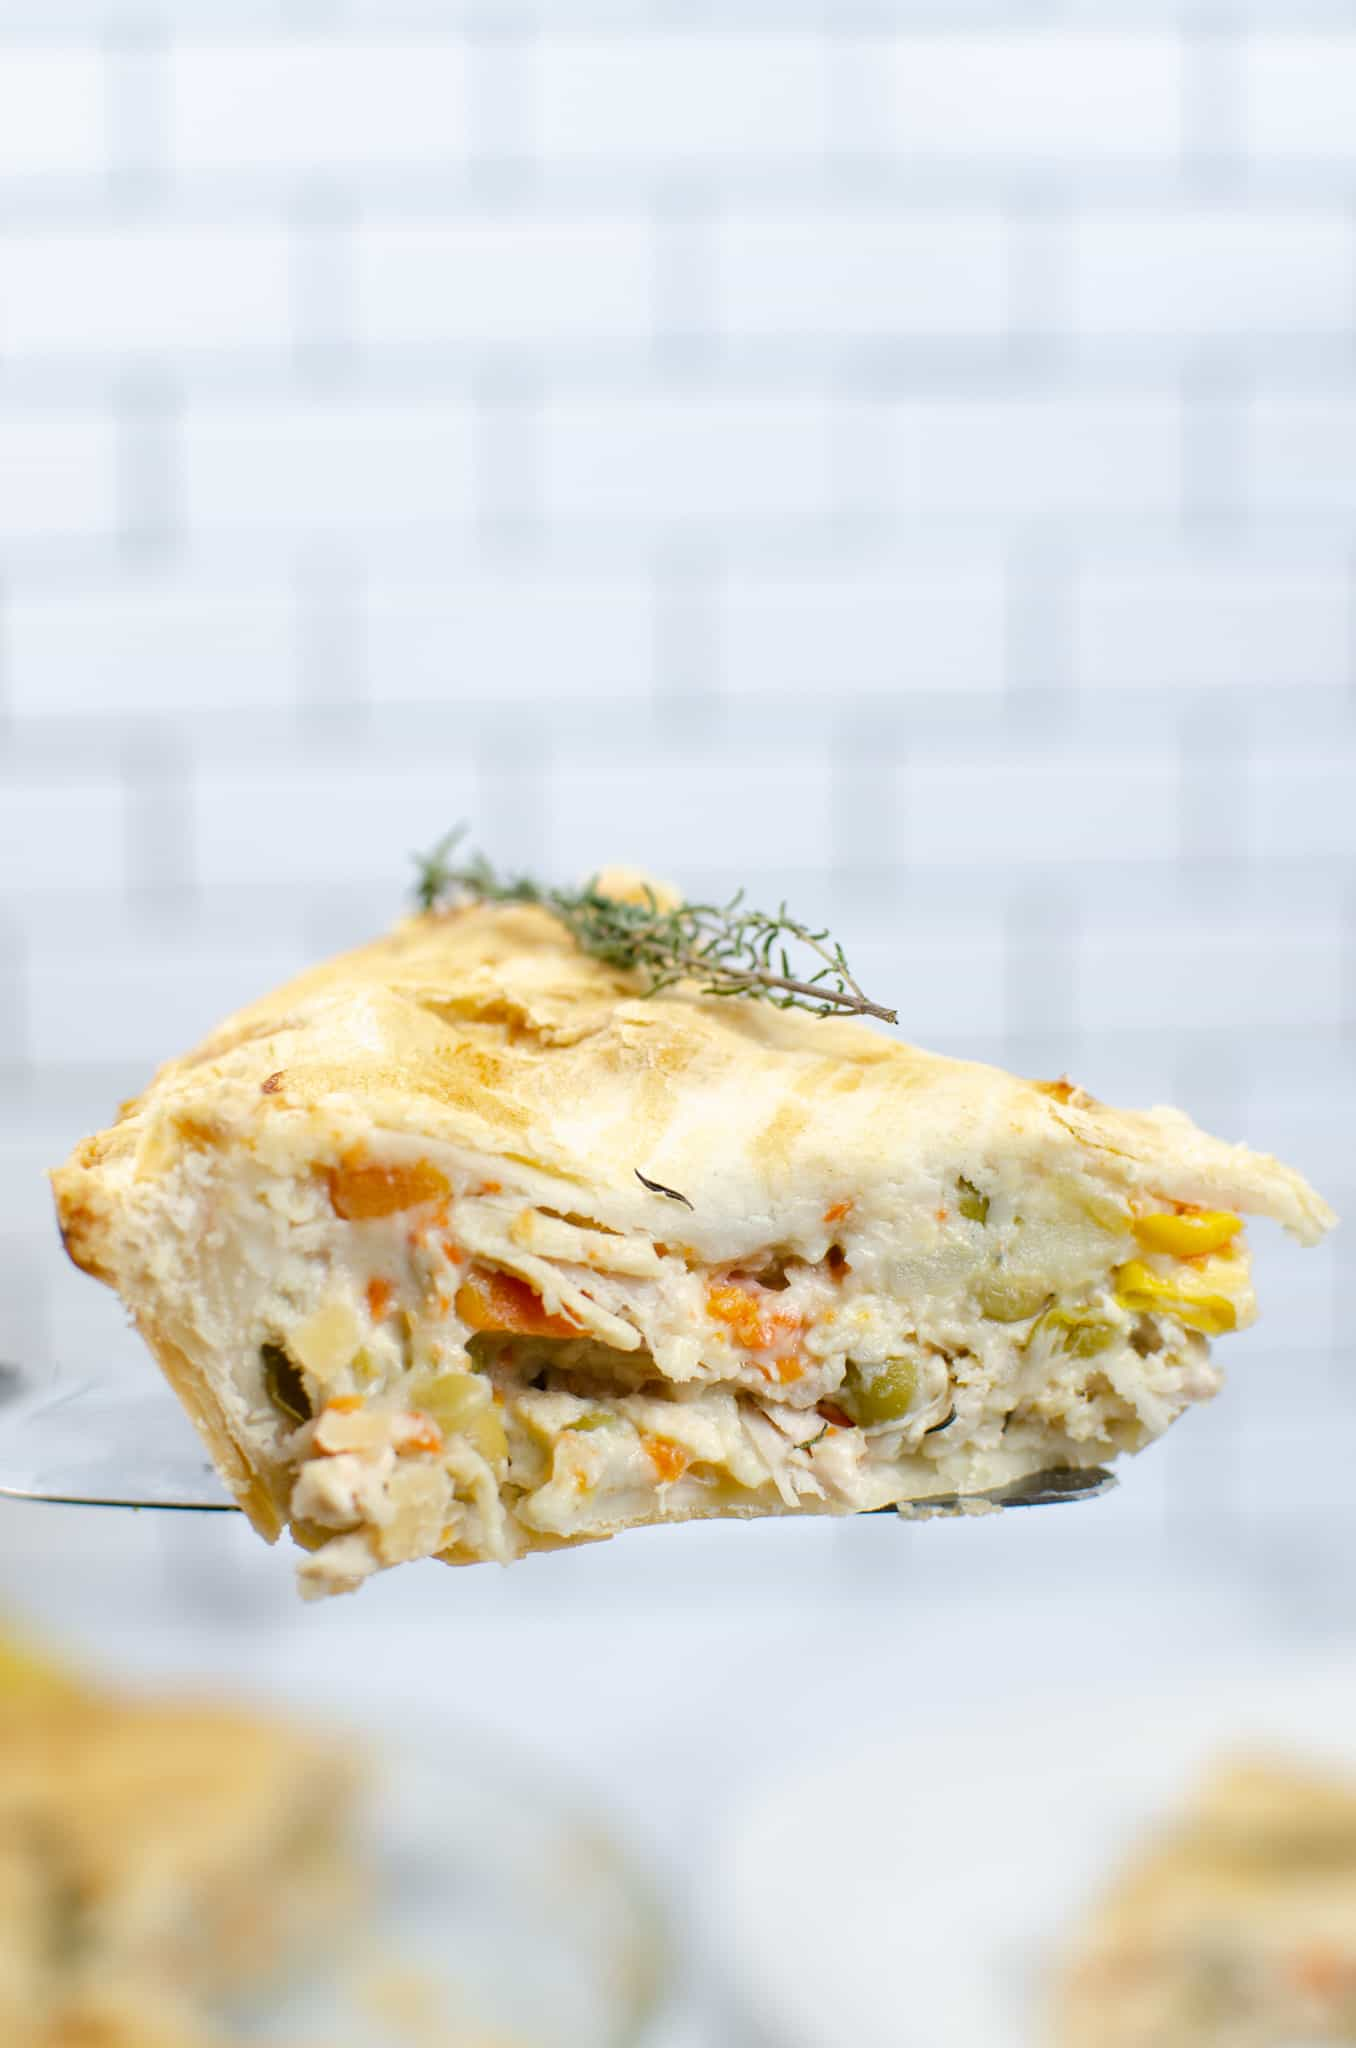 Slice of Turkey Pot Pie held up in a white tile background